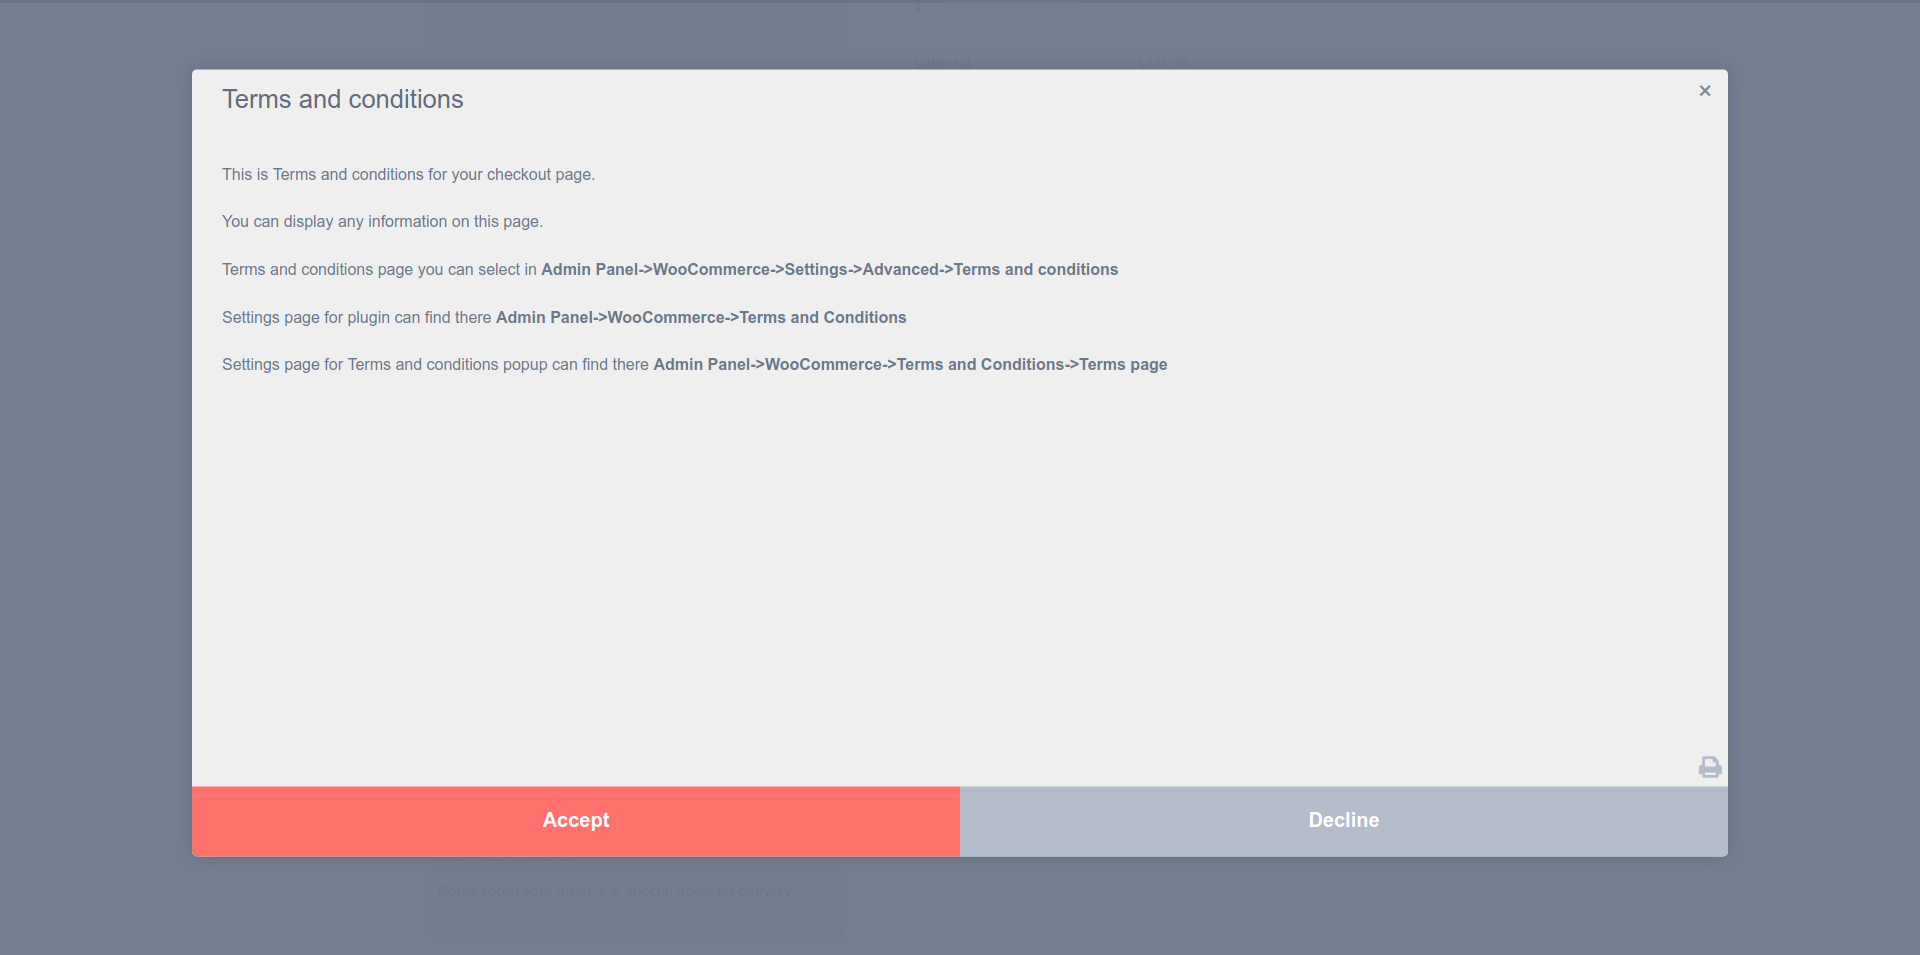 Templates Full Footer Buttons. WooCommerce -> Terms and Conditions Popup -> Templates